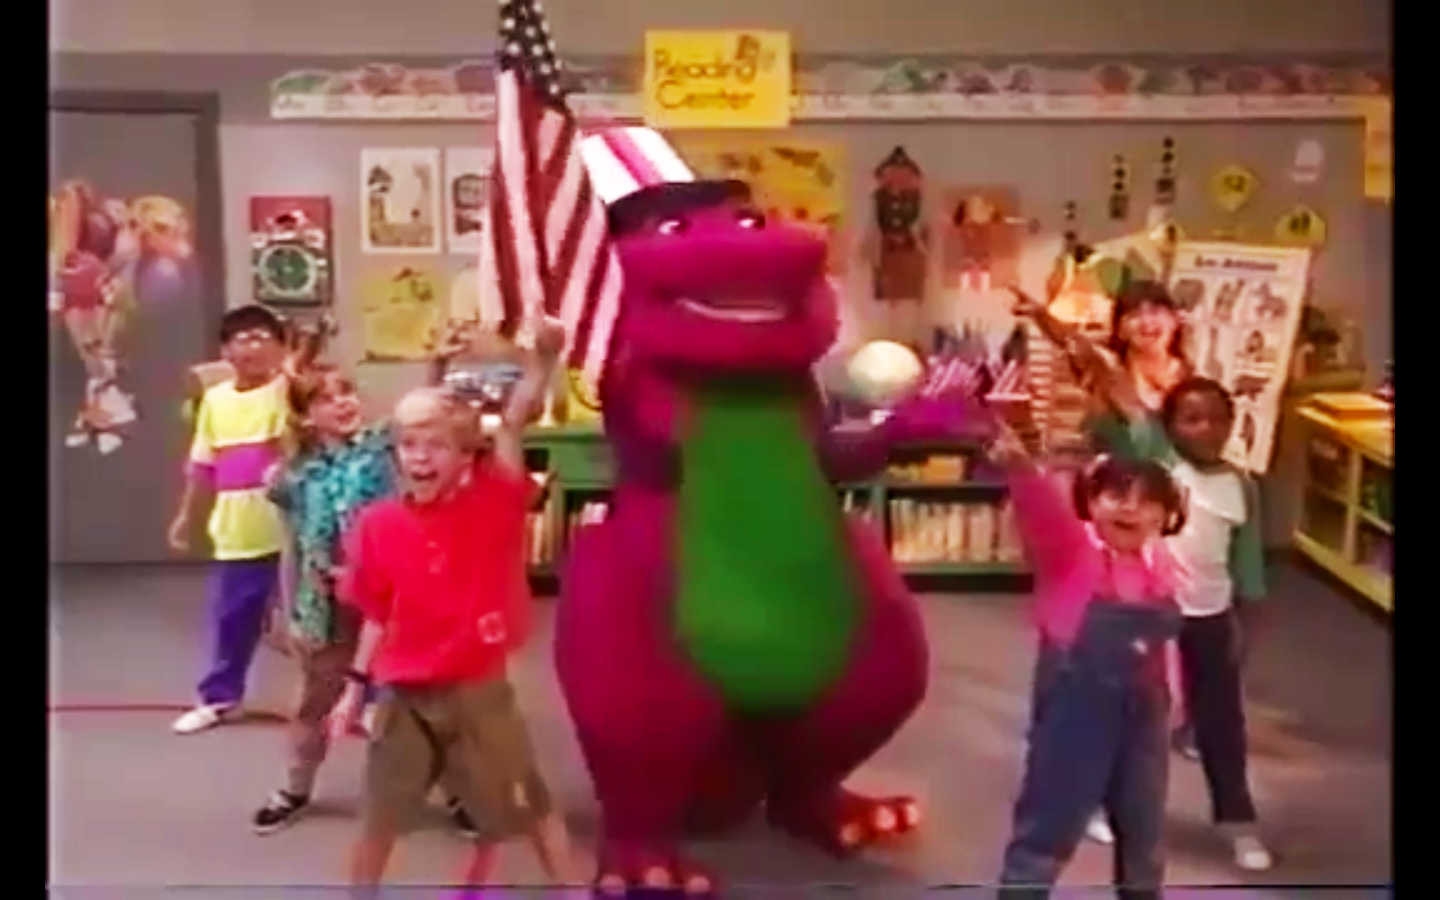 Barney the Dinosaur is getting a new movie. But is America ready?